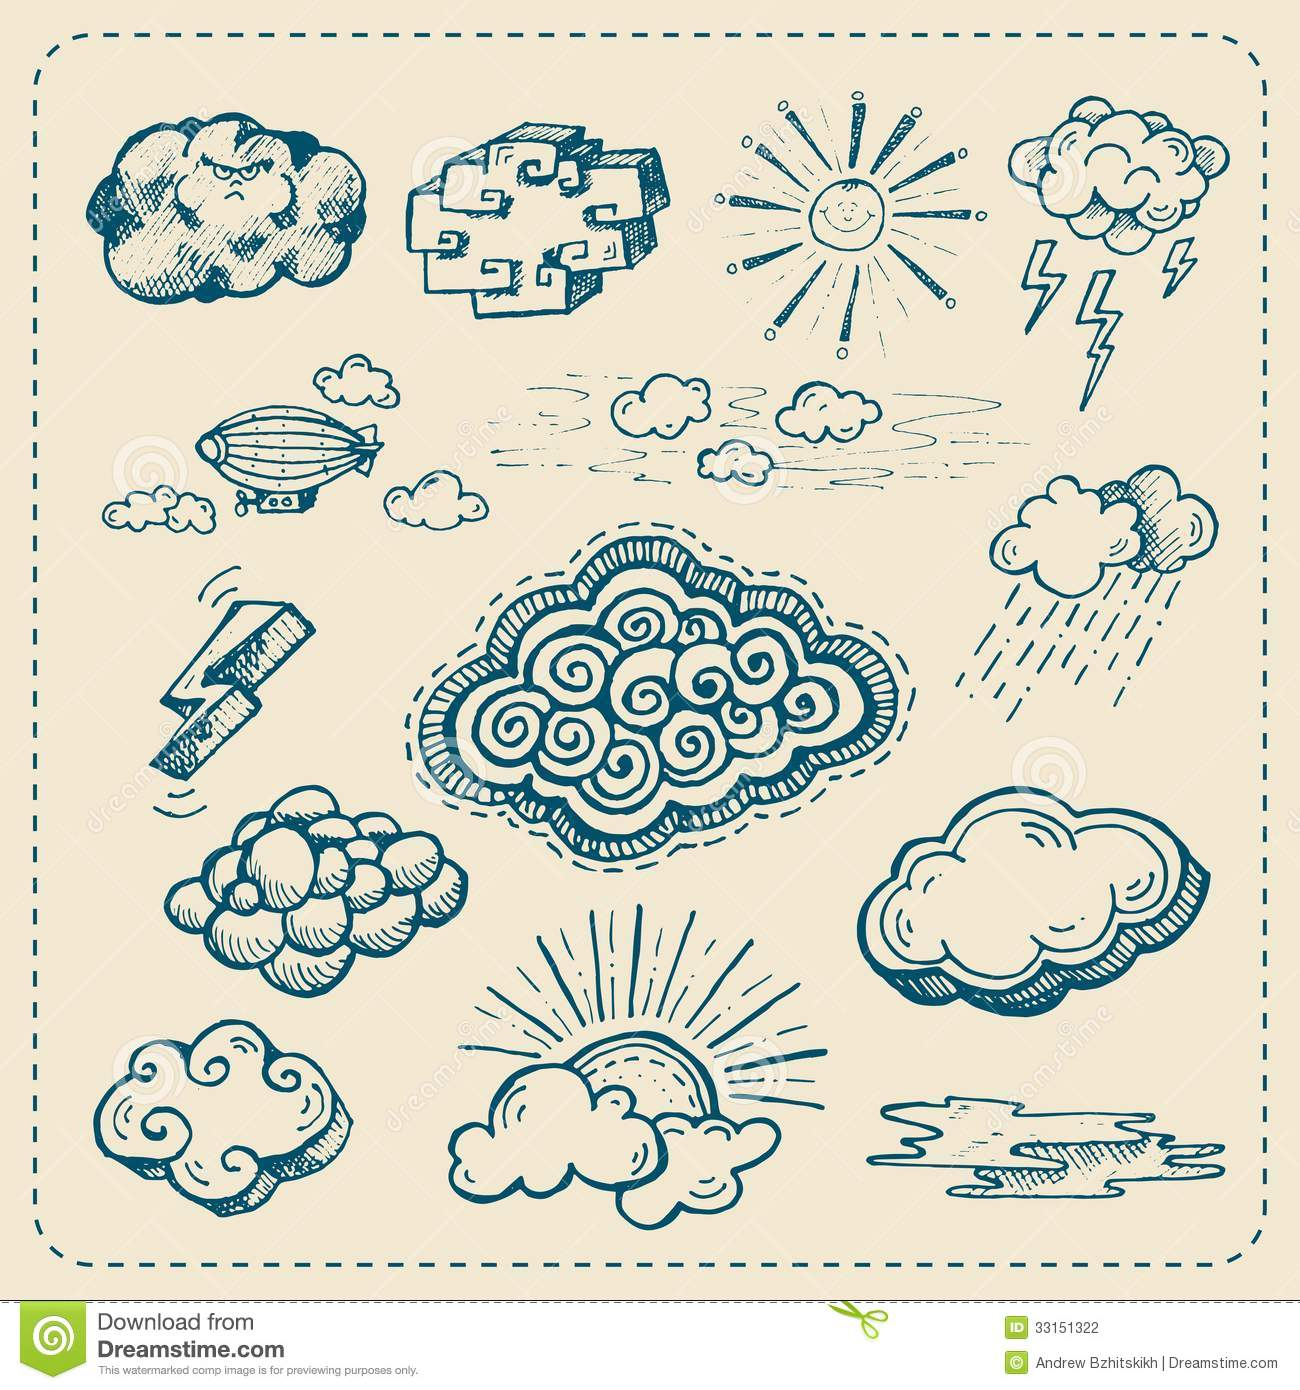 Cloud Drawing Images At Getdrawings